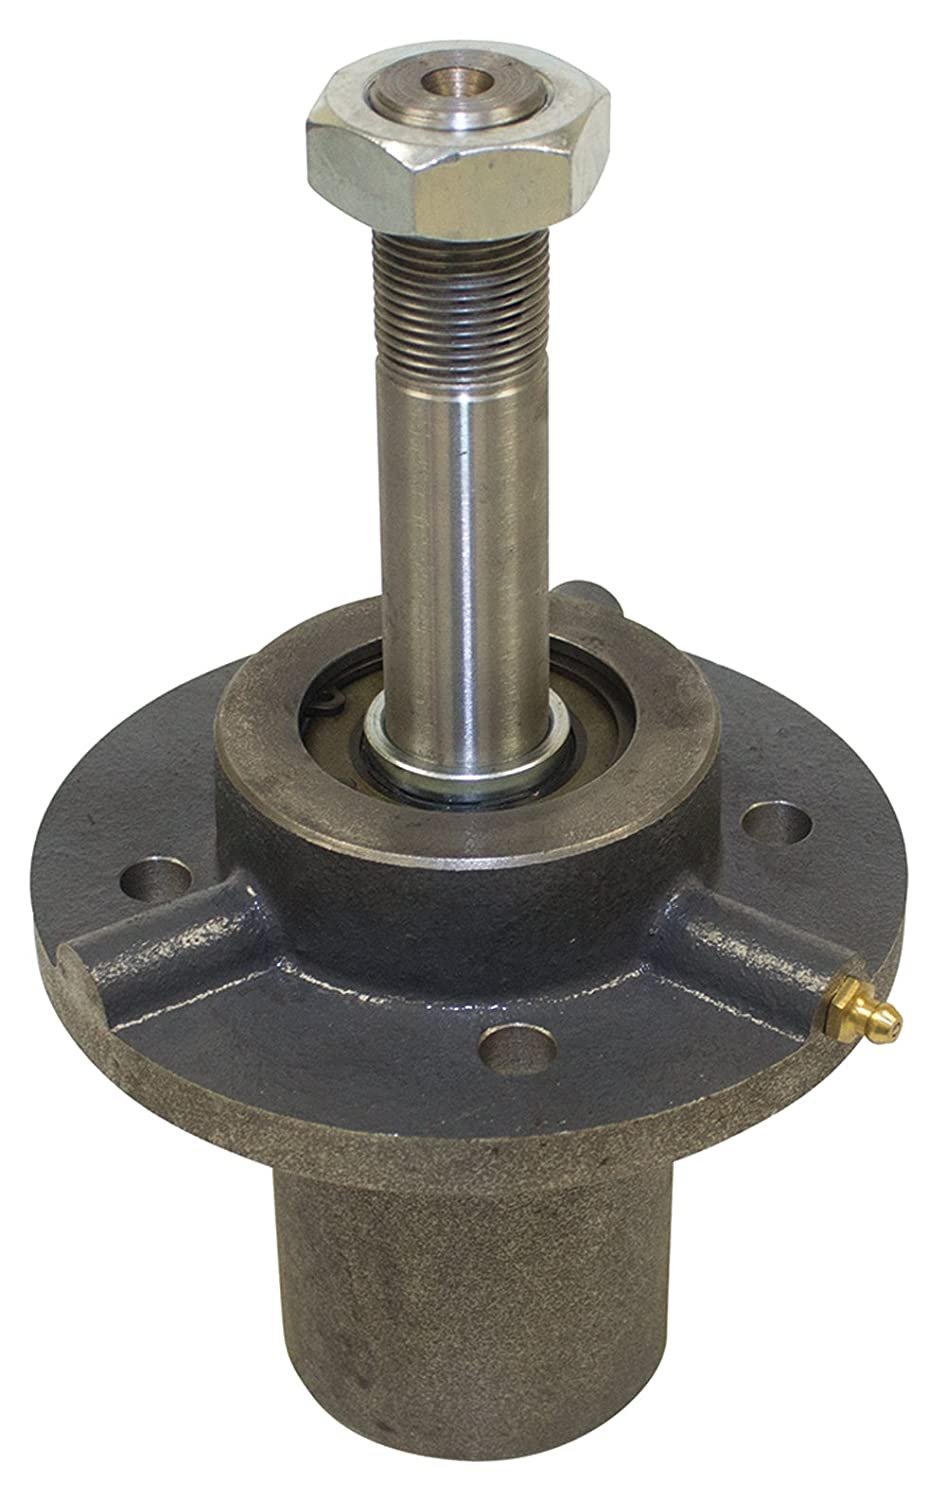 Stens 285-466 Spindle Assembly, Dixie Chopper